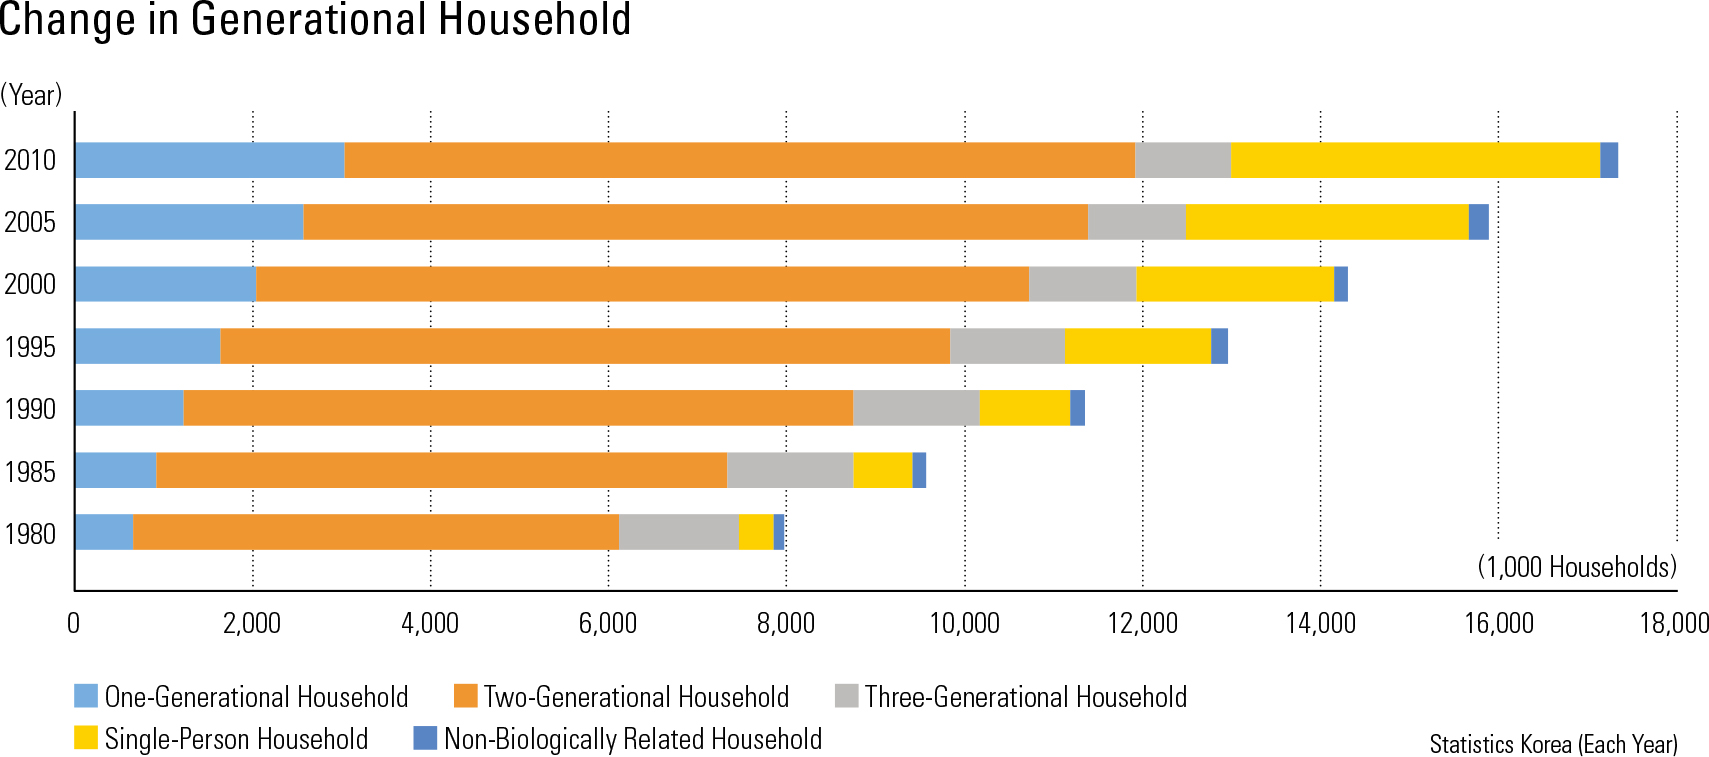 Change in Generational Household